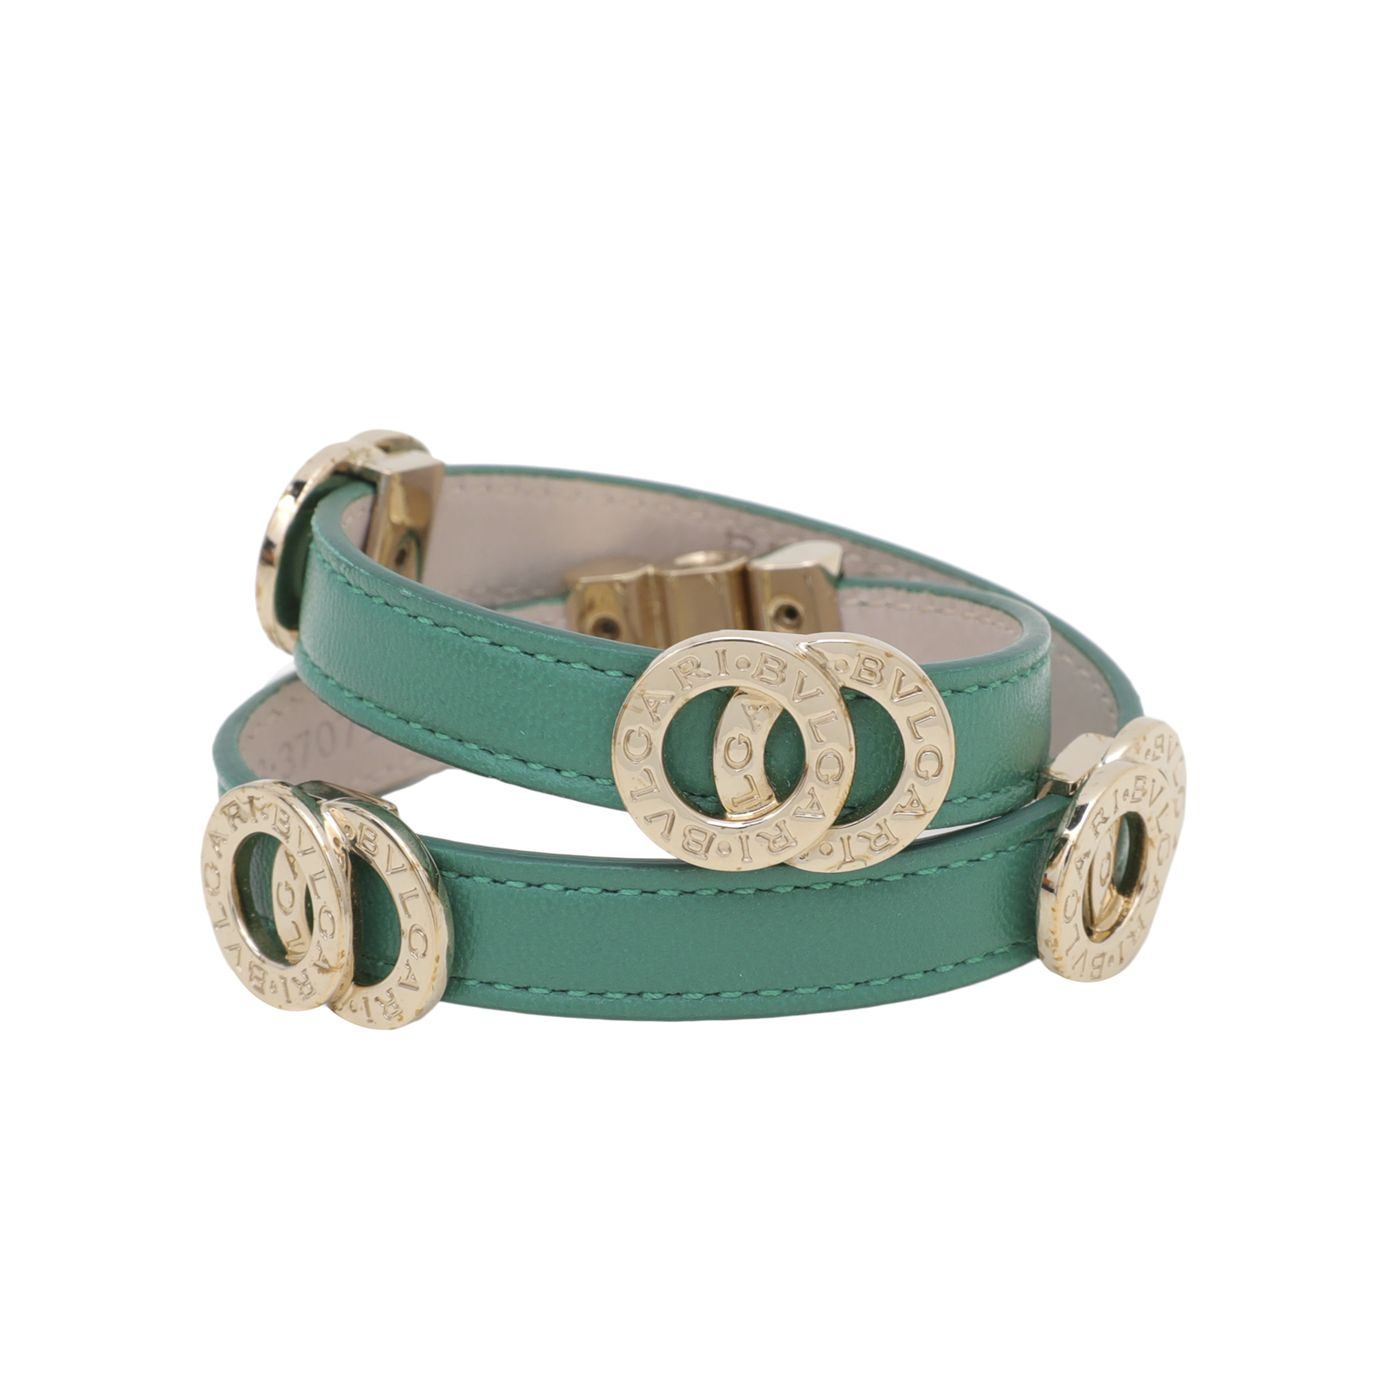 Bvlgari Green Double Coiled Bracelet Small